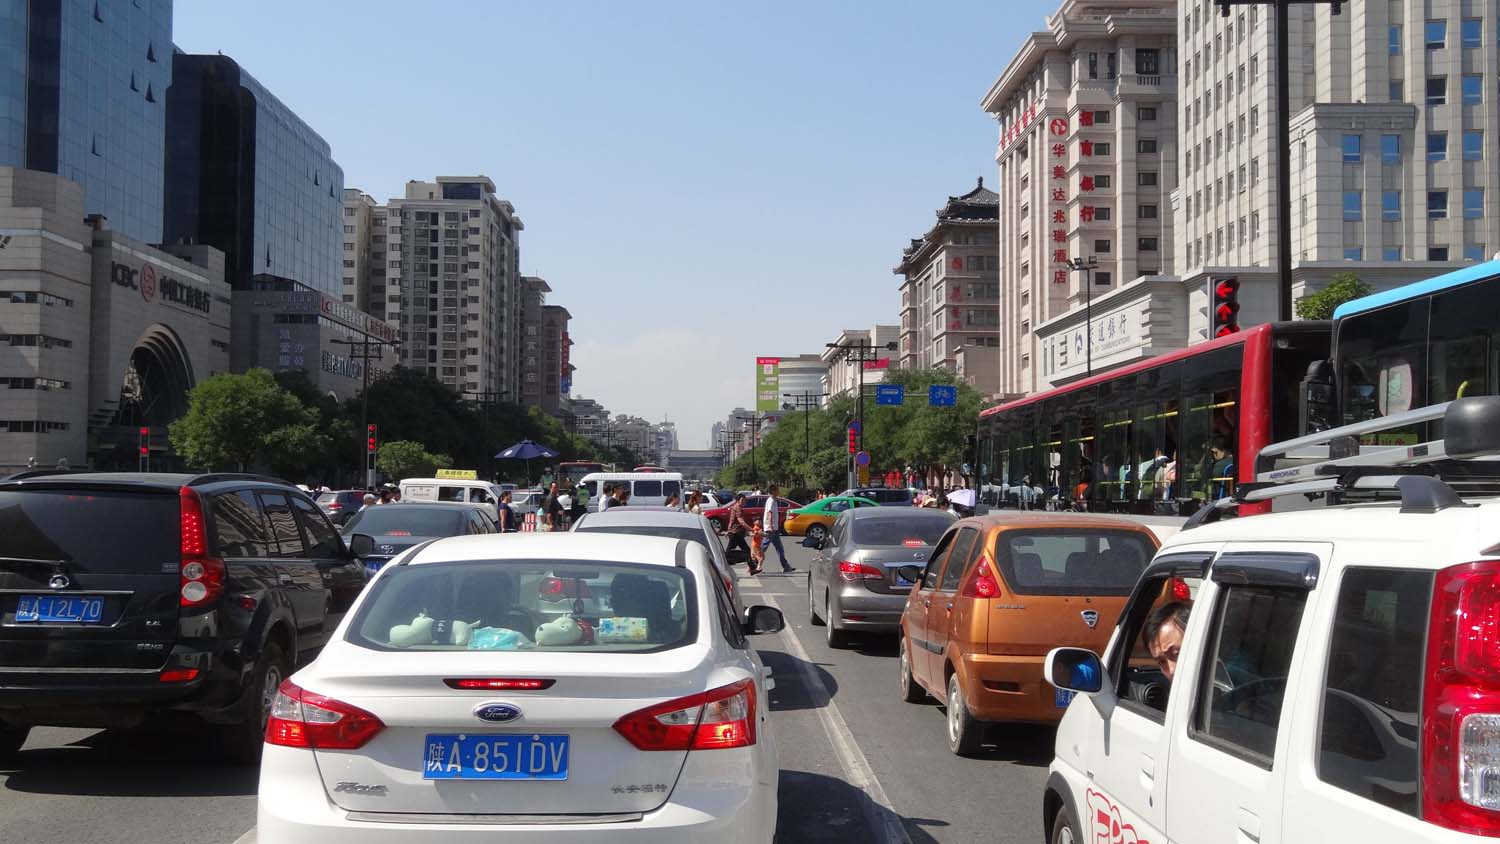 driving in Xi'an - we didn't think the traffic was too bad